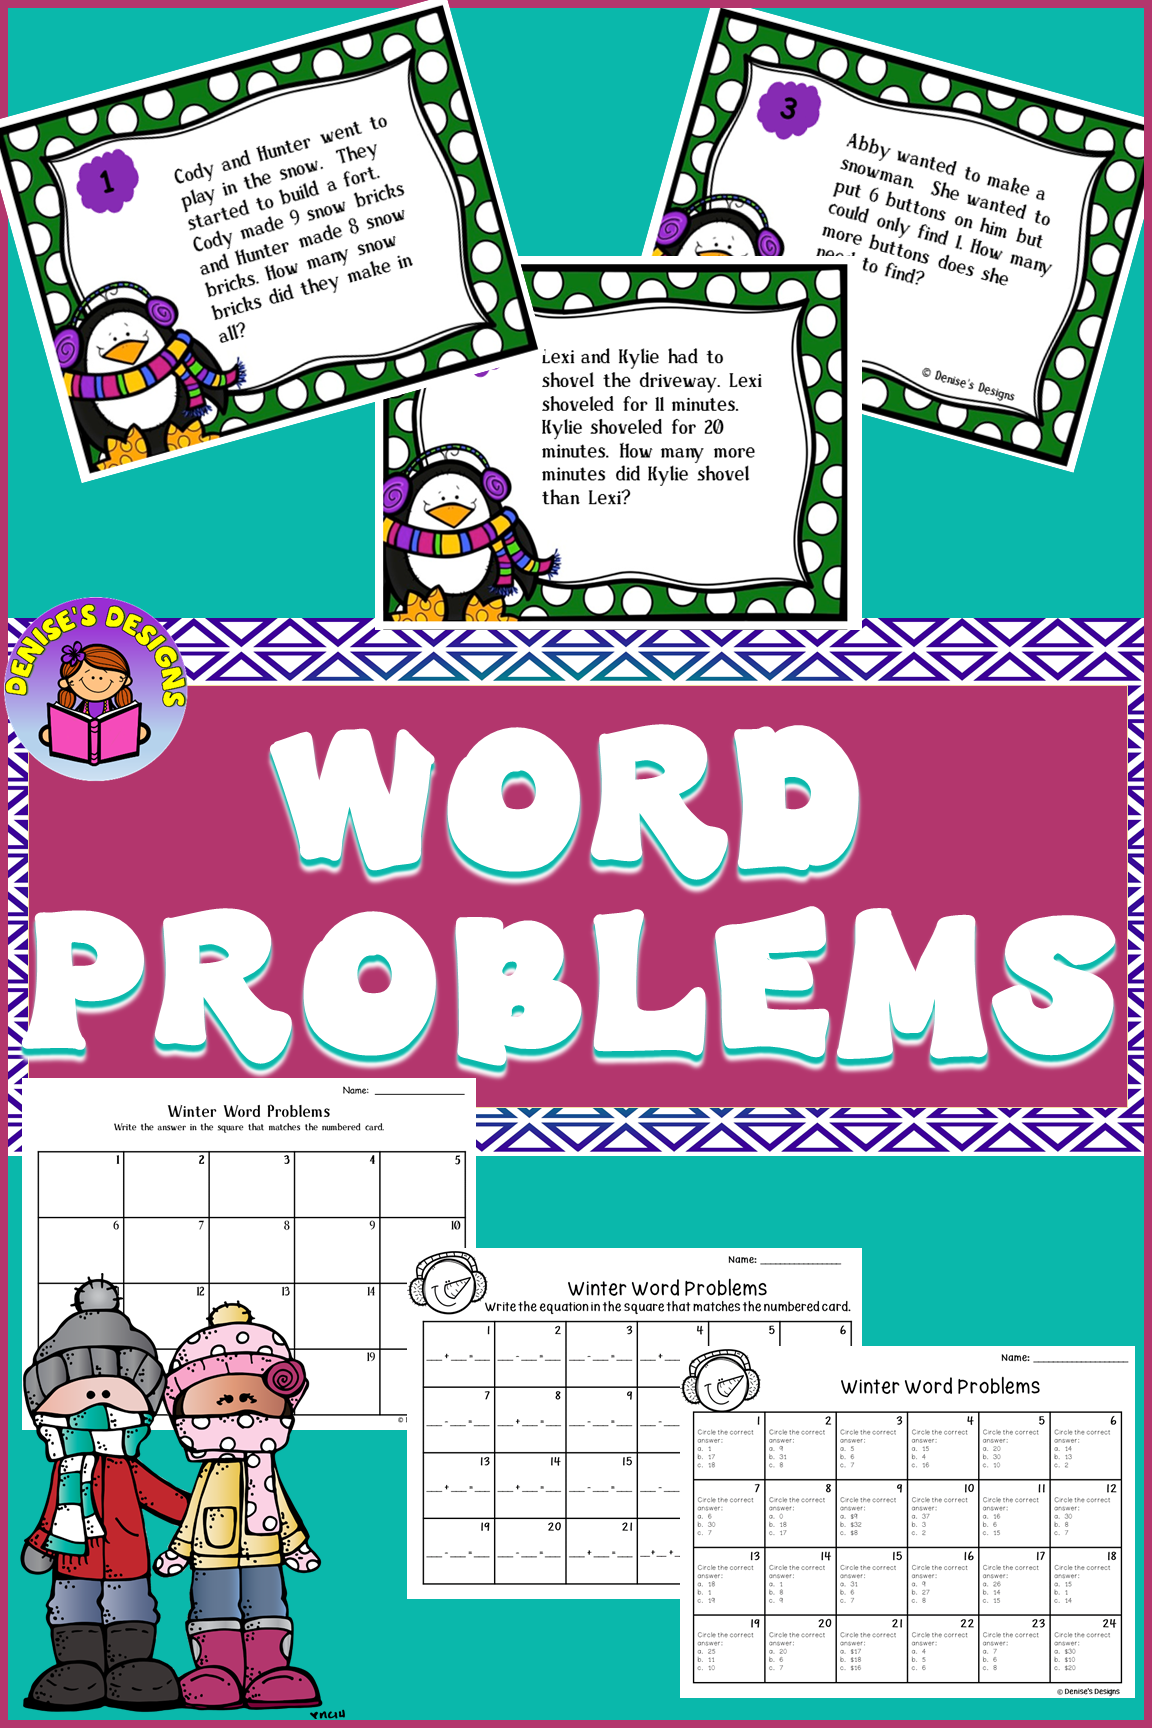 Word Problems Addition And Subtraction With Images